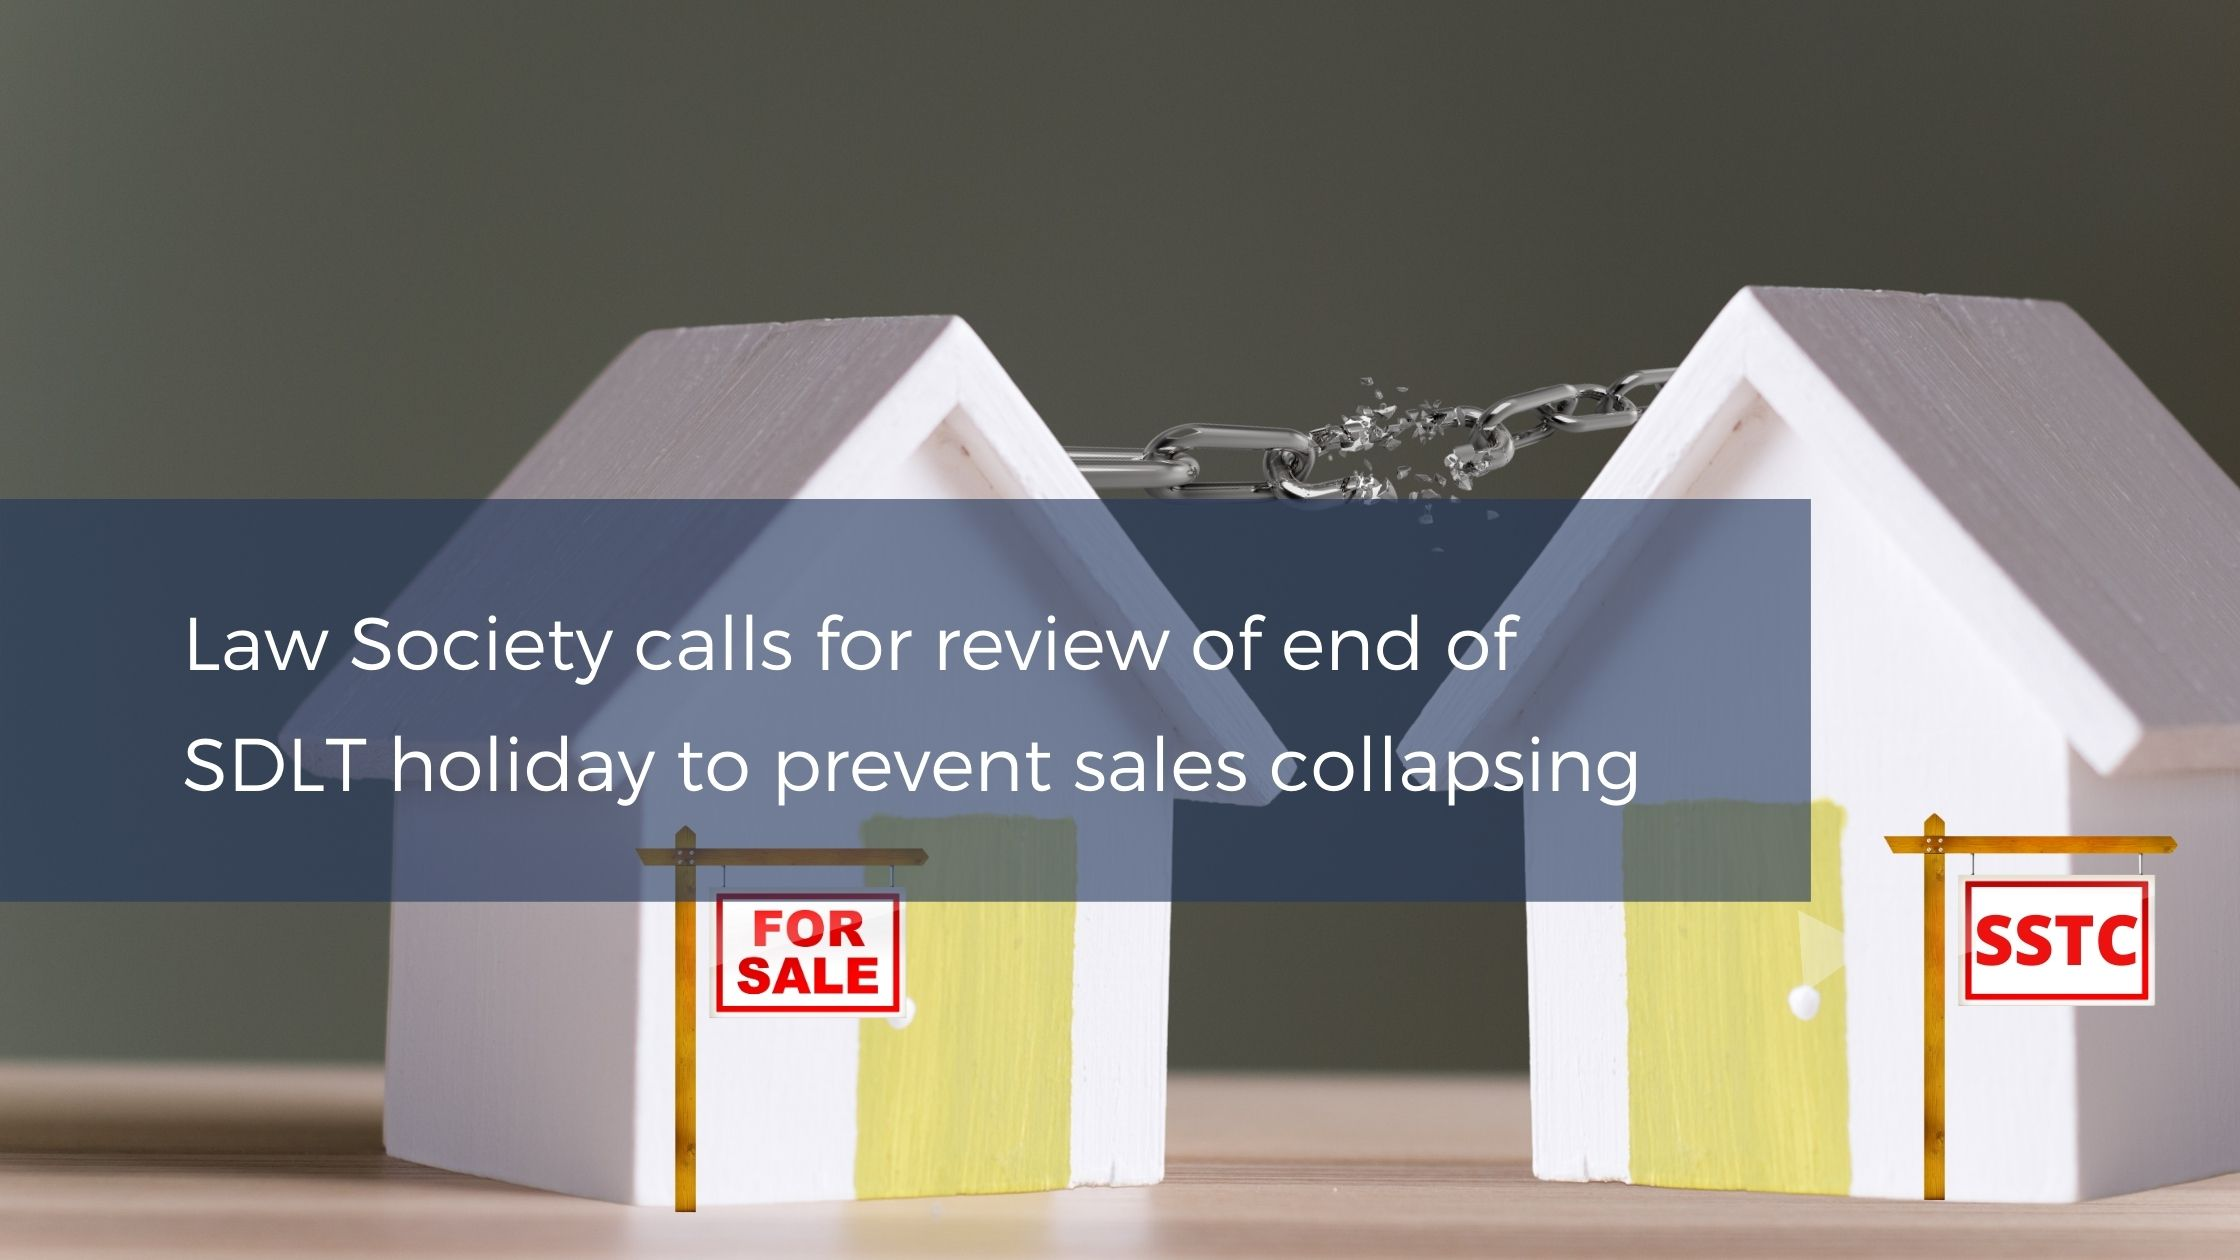 Stamp Duty Land Tax holiday extension to prevent sales collapsing